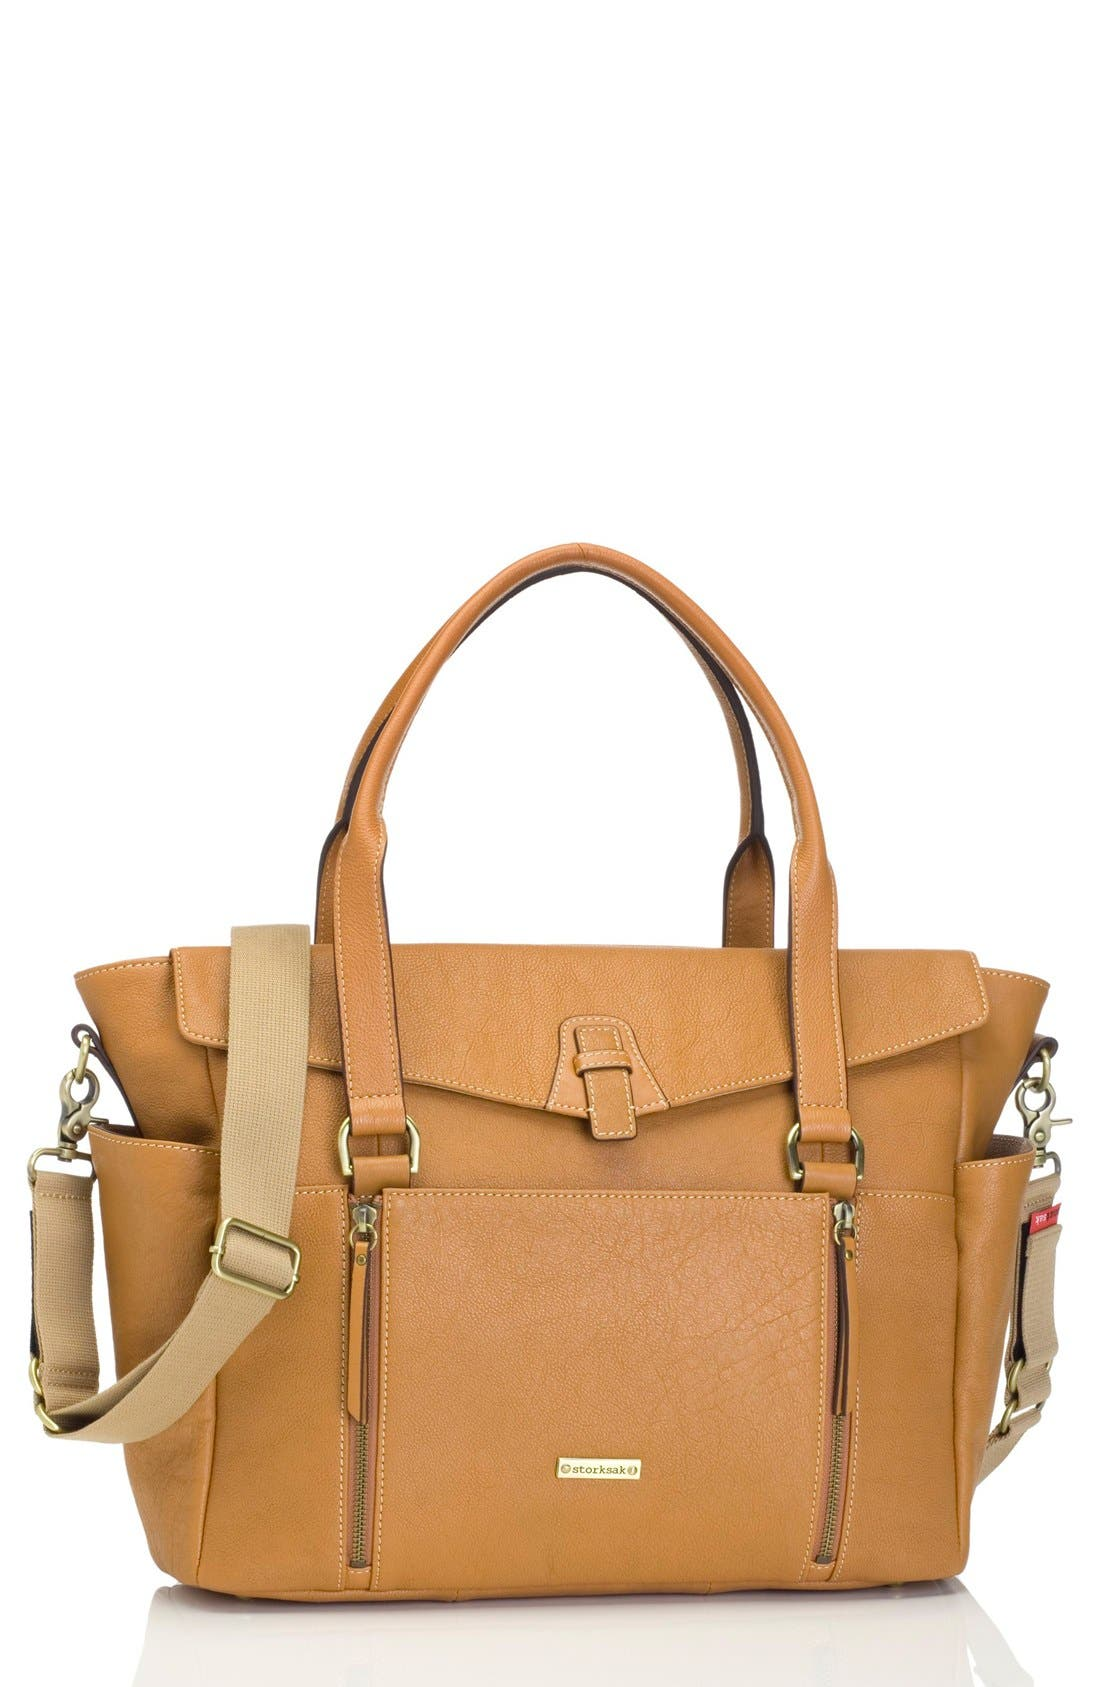 STORKSAK,                             'Emma' Leather Diaper Bag,                             Main thumbnail 1, color,                             TAN